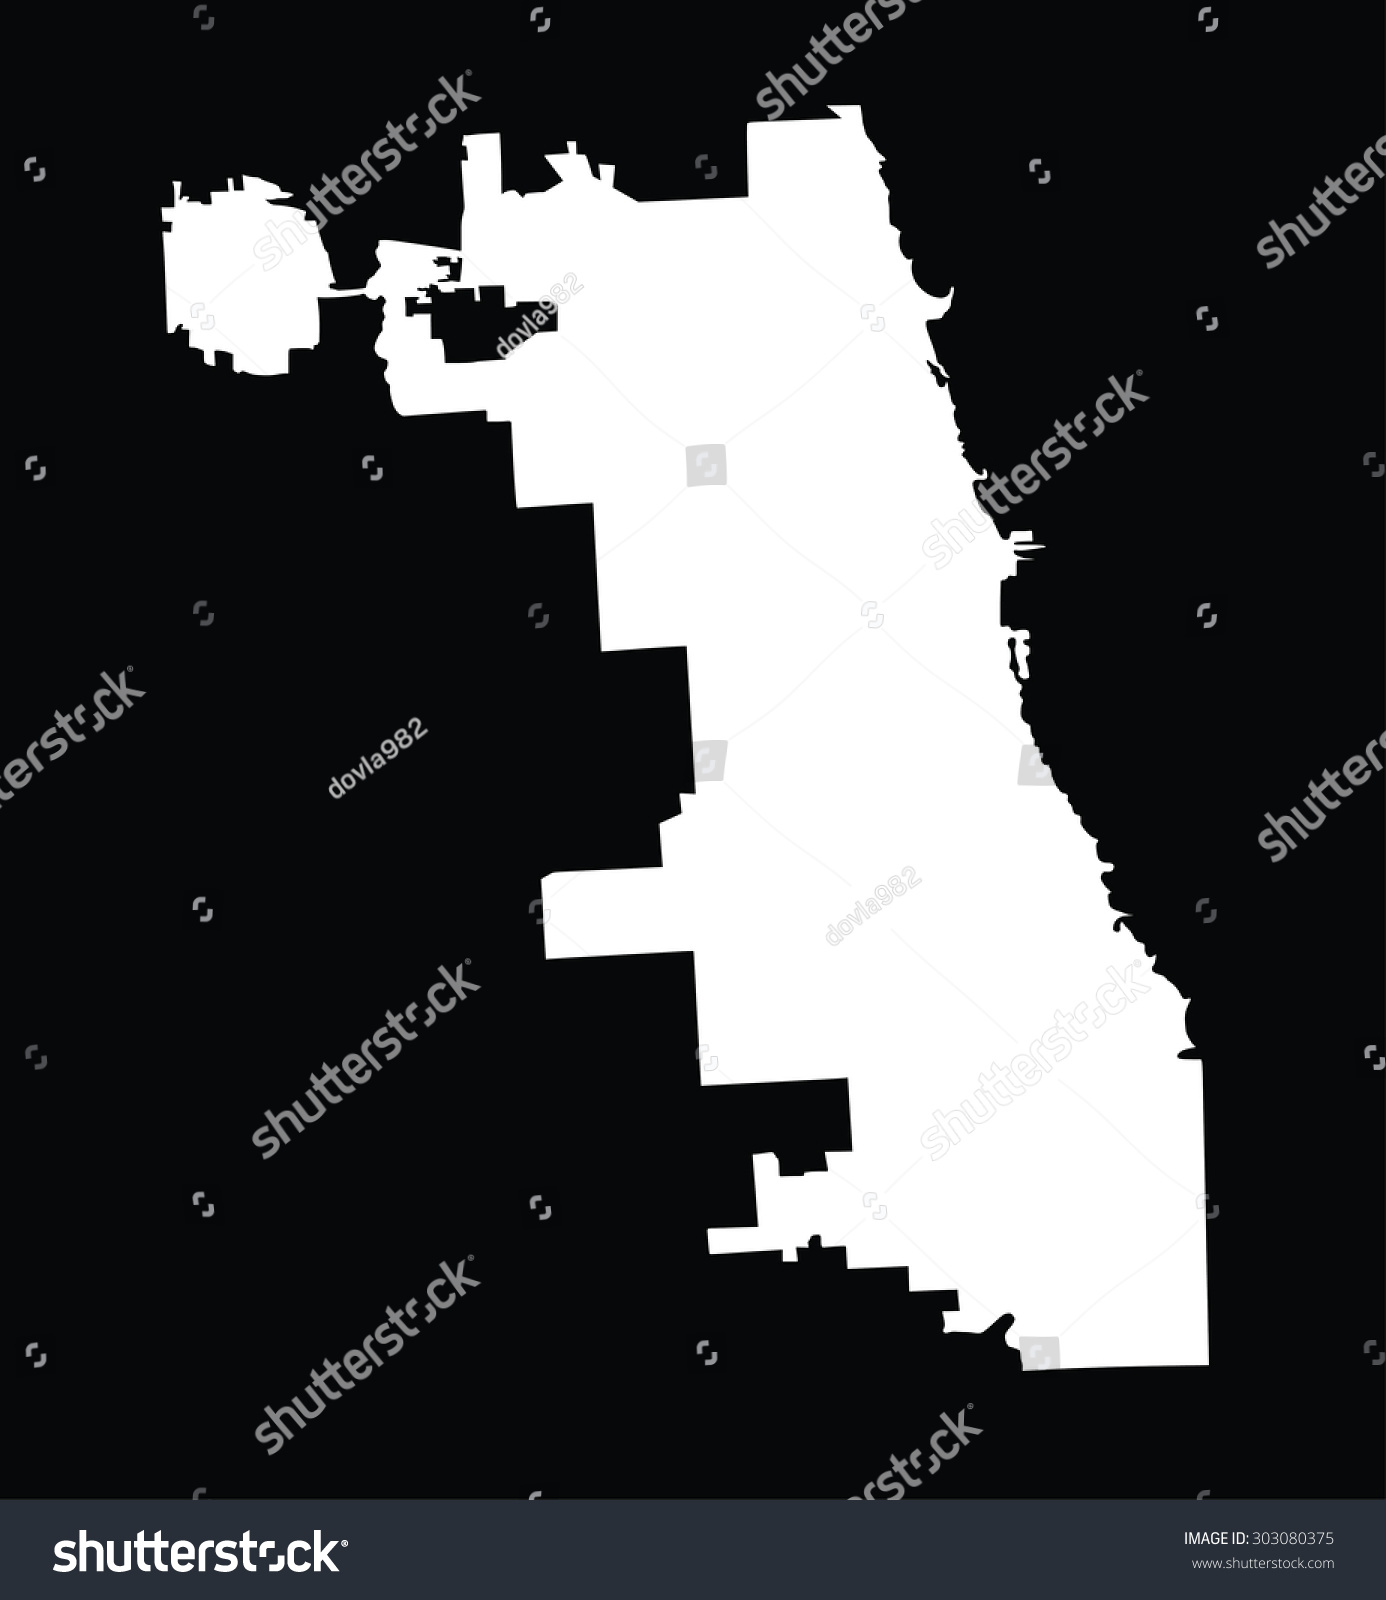 Chicago City map silhouette white vector map